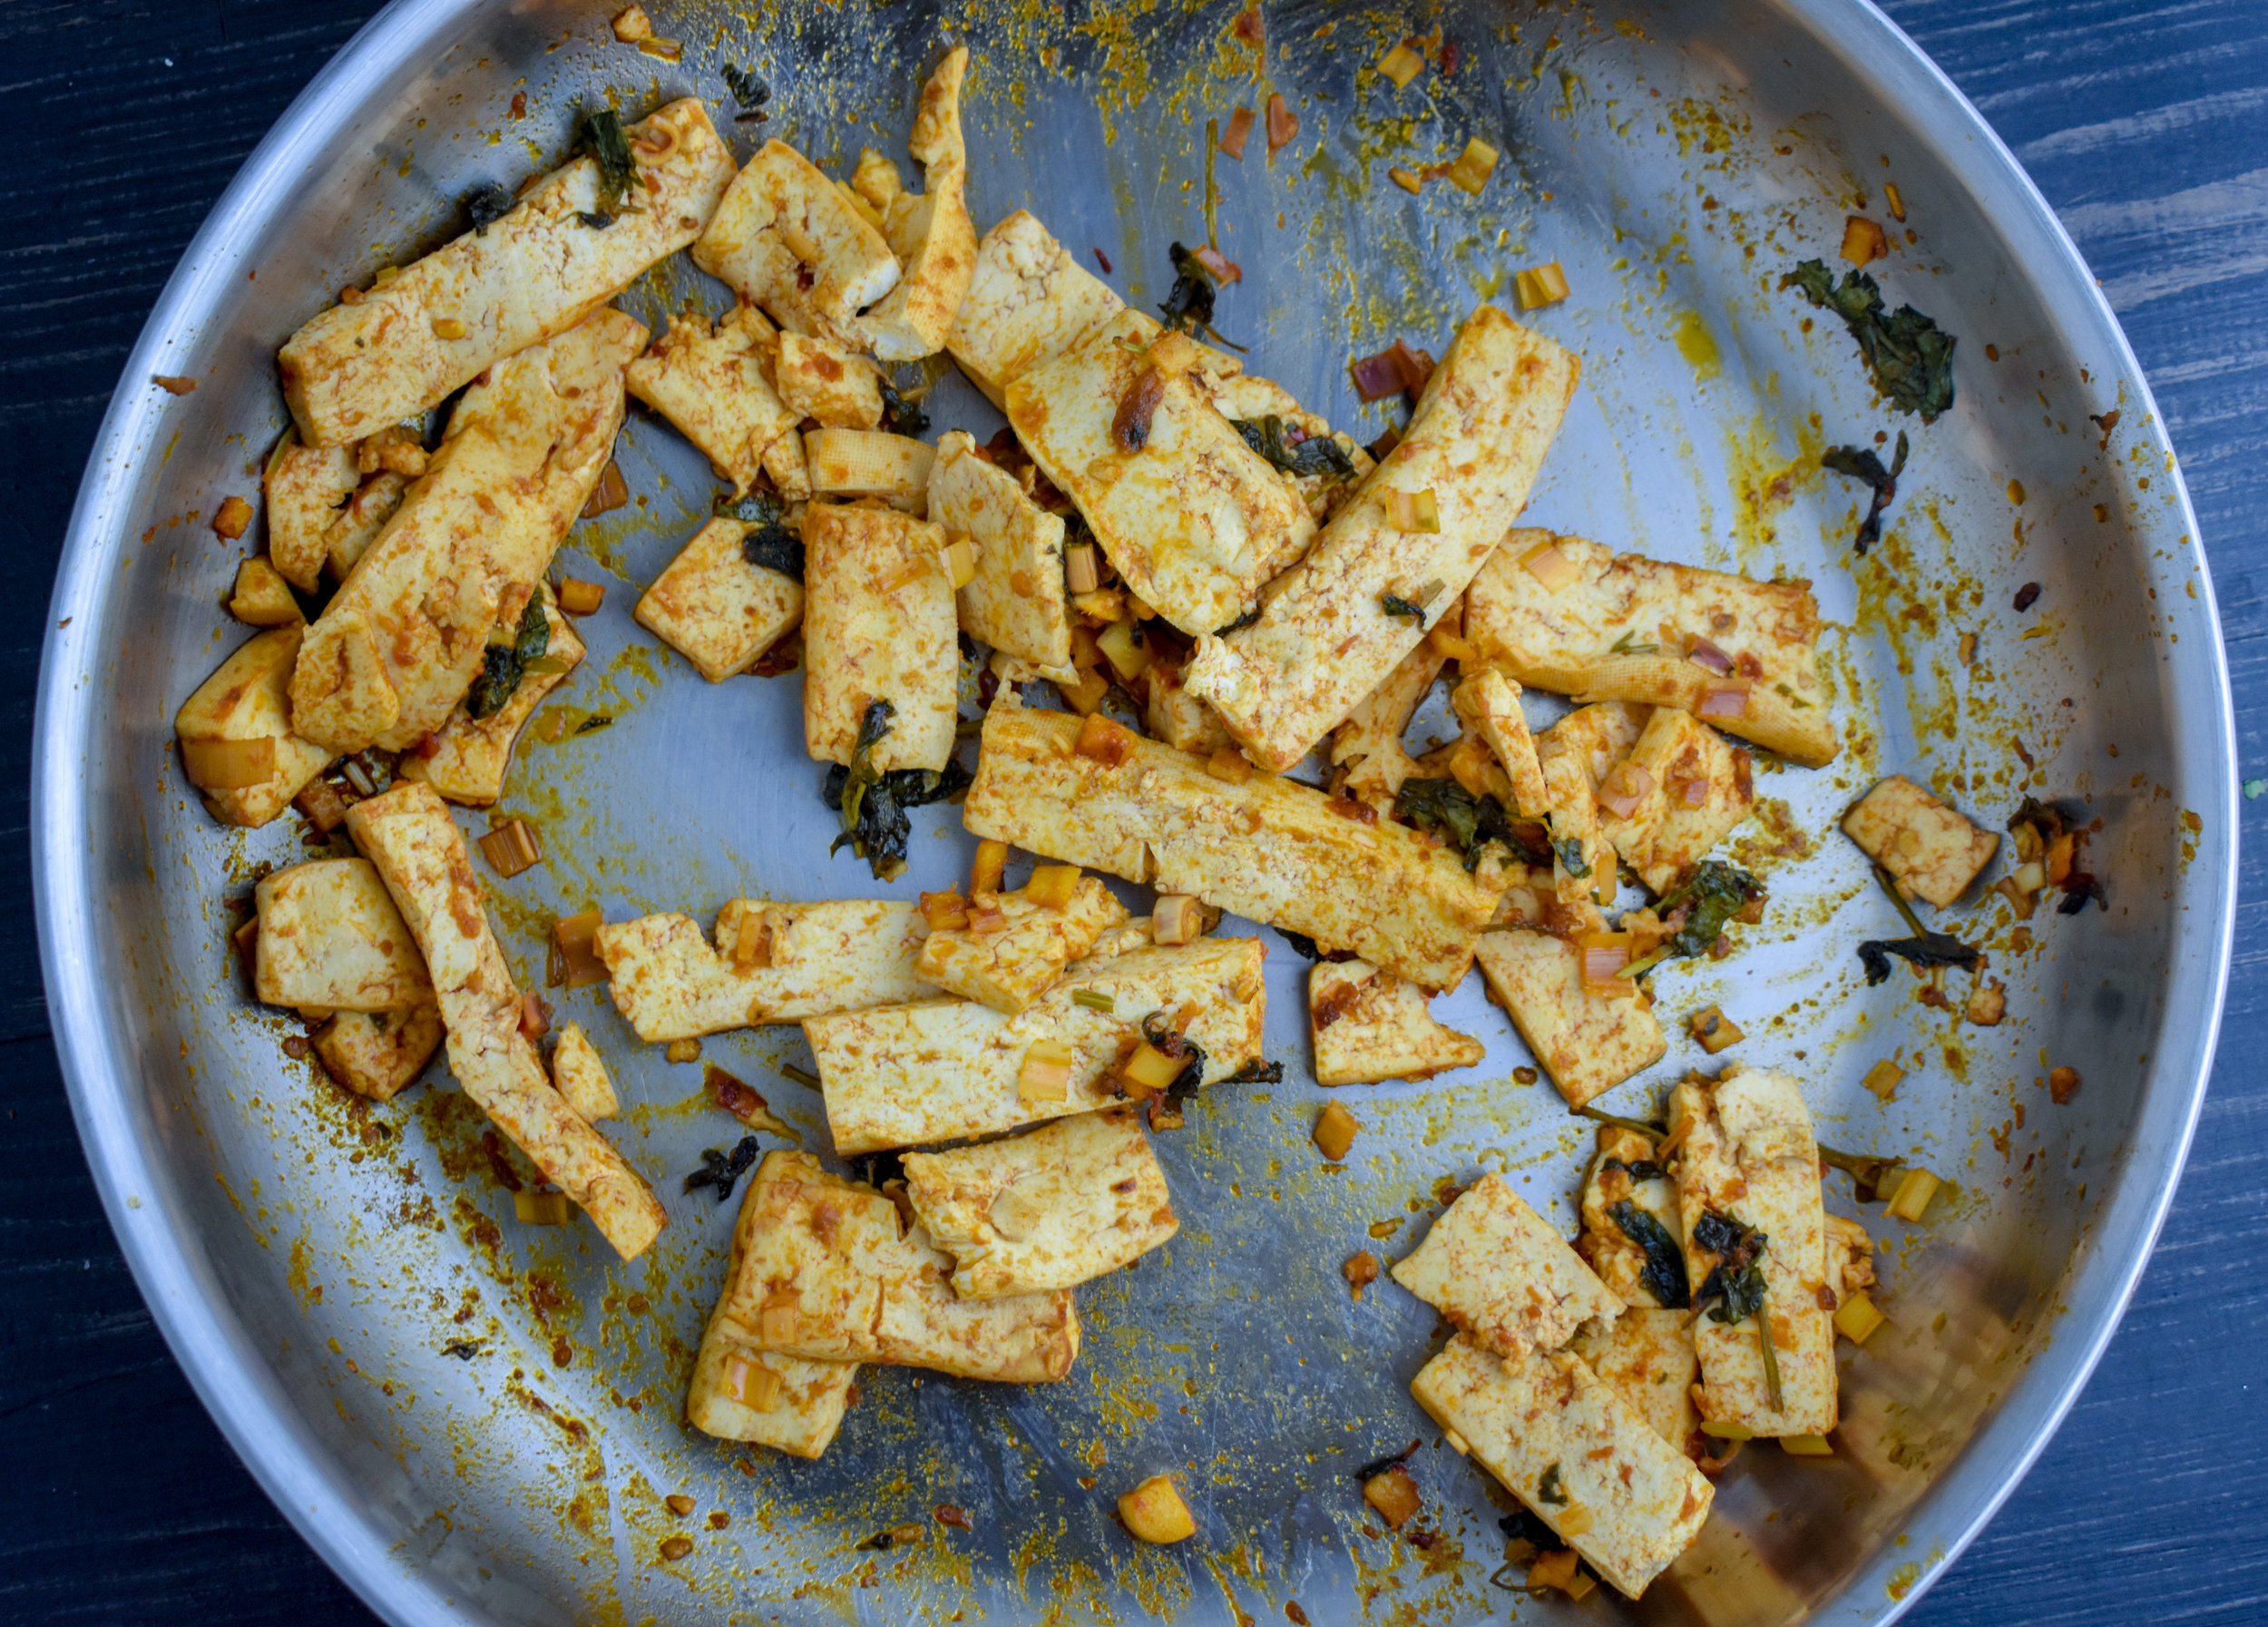 5. Next, add the tofu to your warm pan. It should sizzle and cook quickly. Cook until the marinade starts to cook off and tofu begins to crisp. Should take 5-6 minutes. While waiting, warm up your corn tortillas.